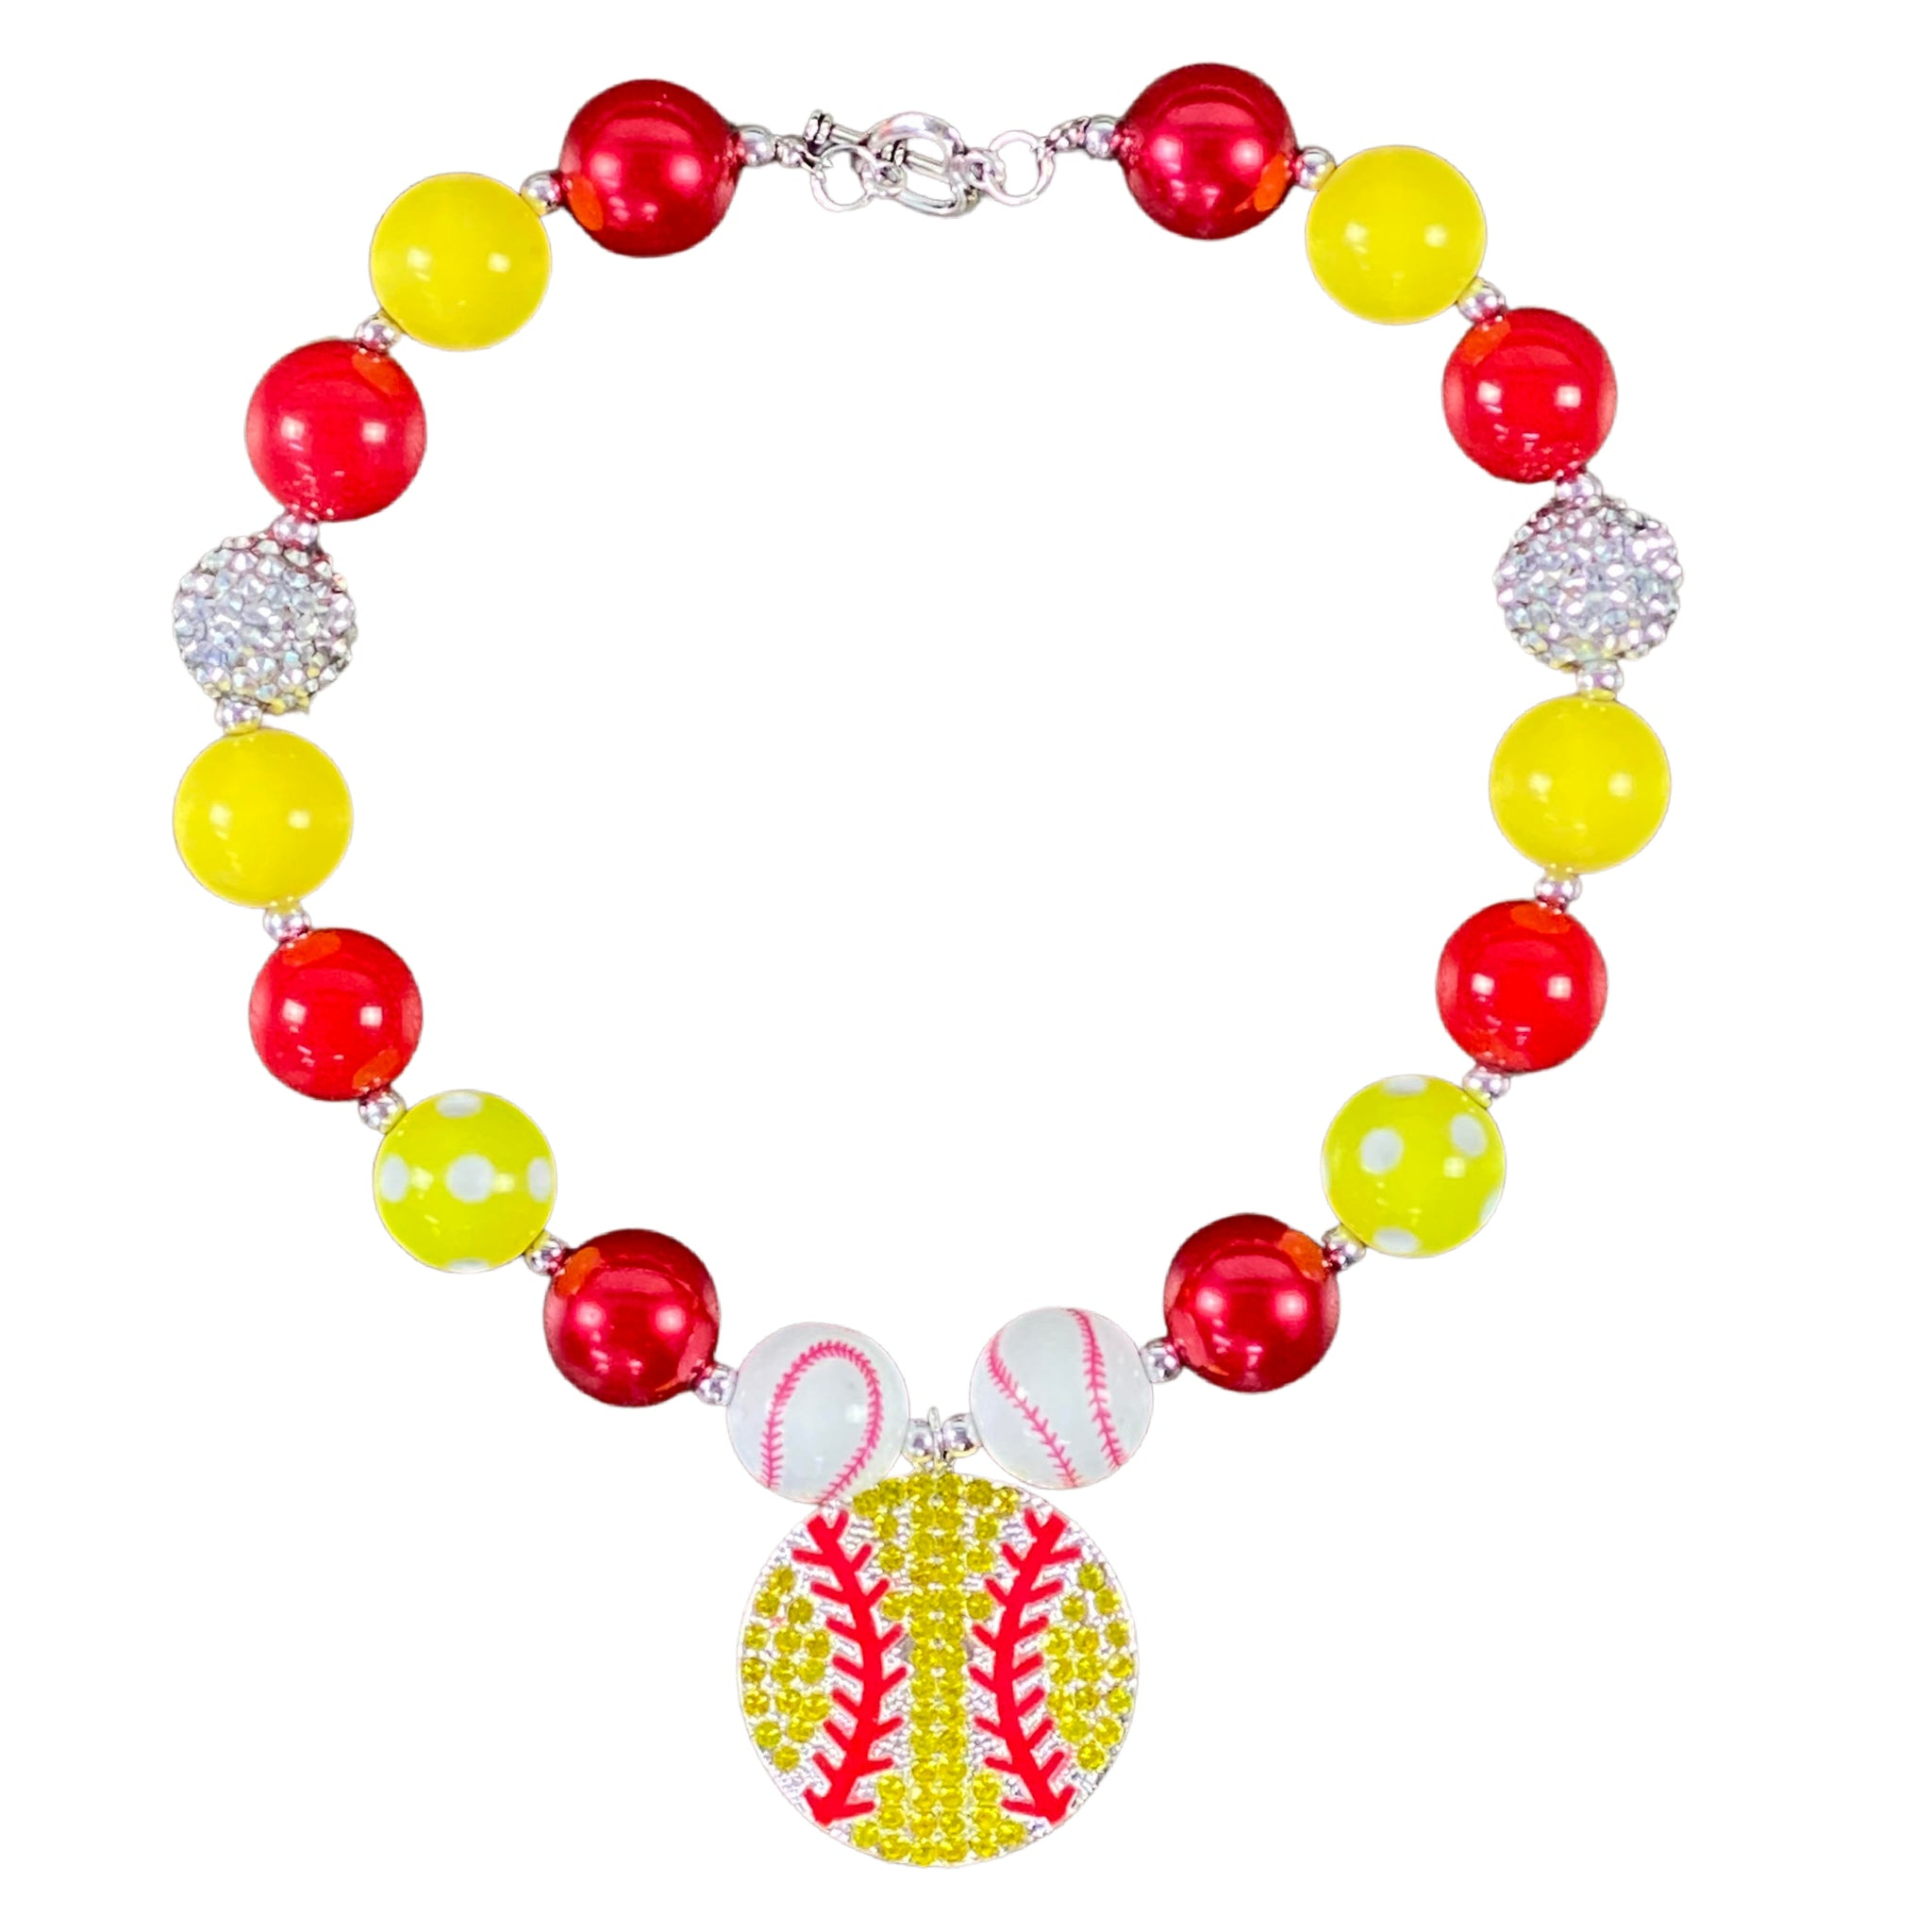 Yellow & Red Sparkly Softball Bubblegum Necklace